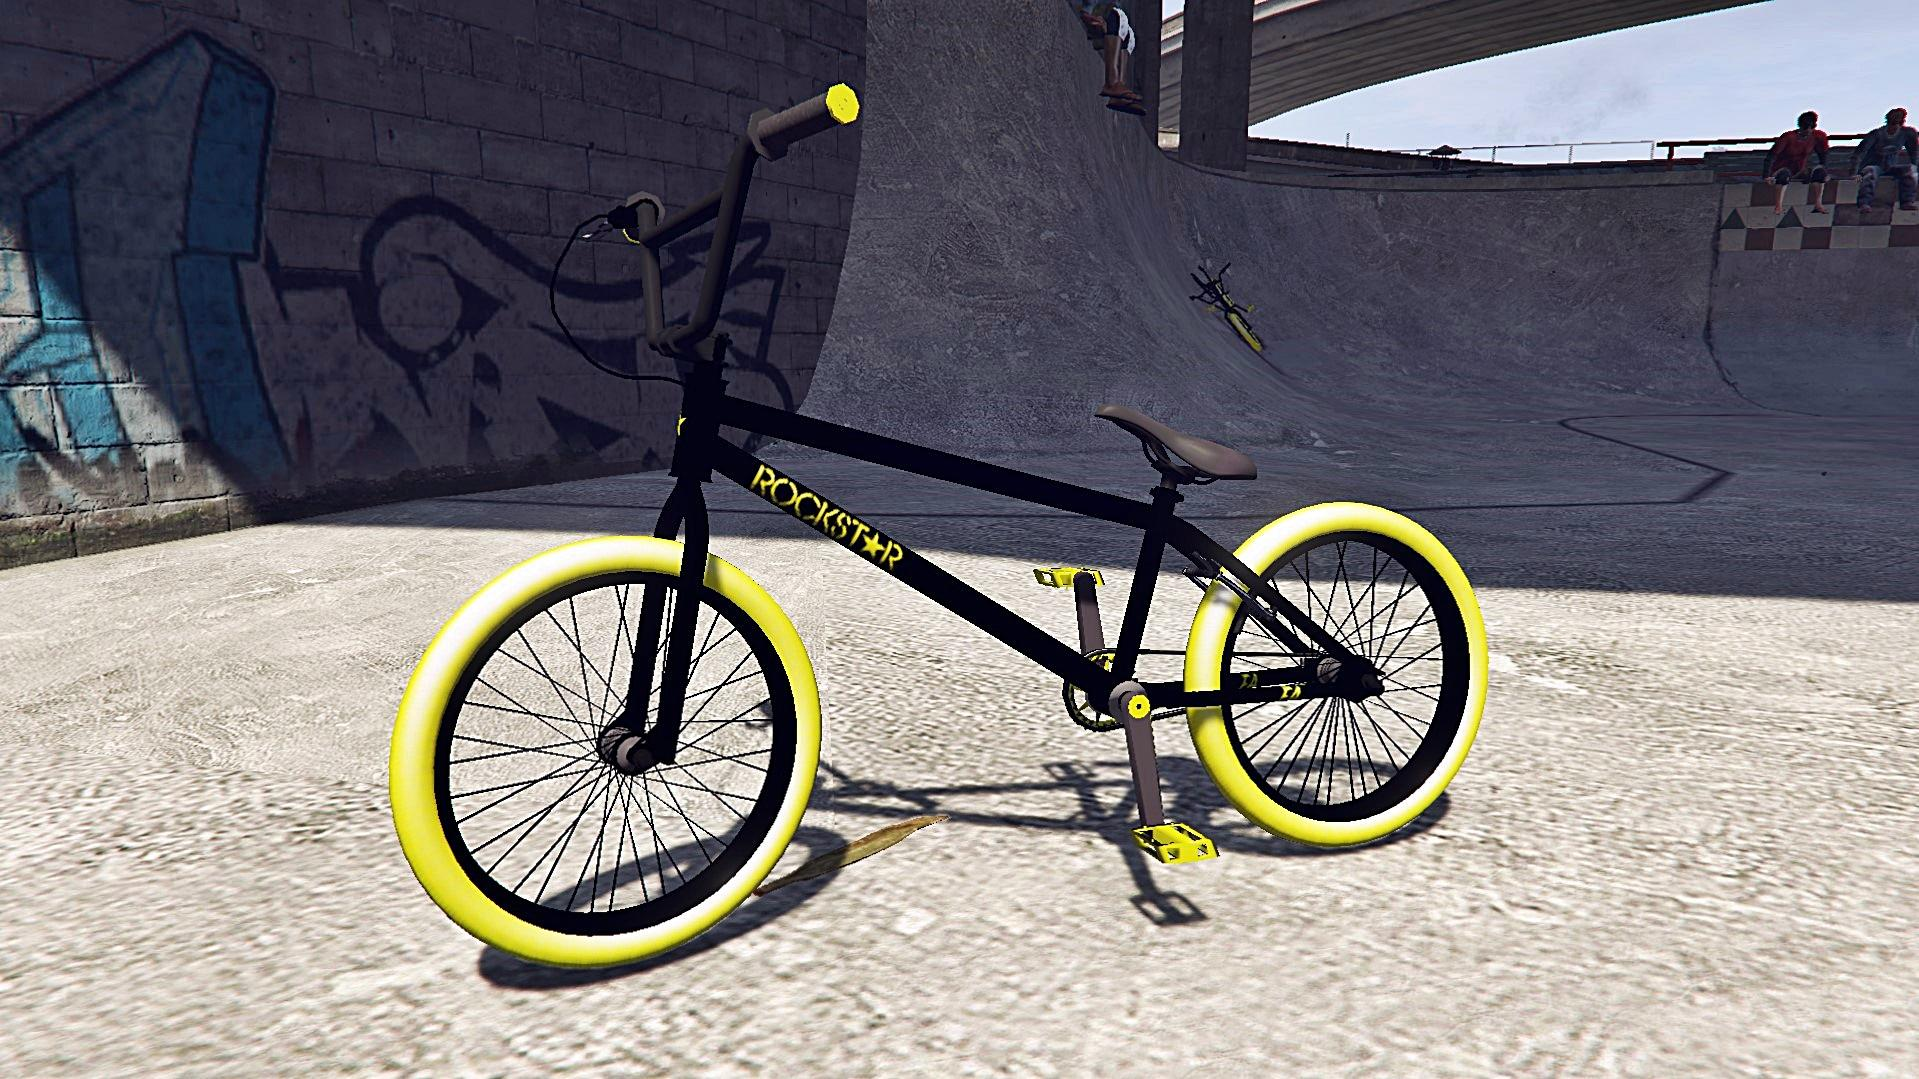 Bmx Rockstar Energy [Addon / Replace] - GTA5-Mods.com